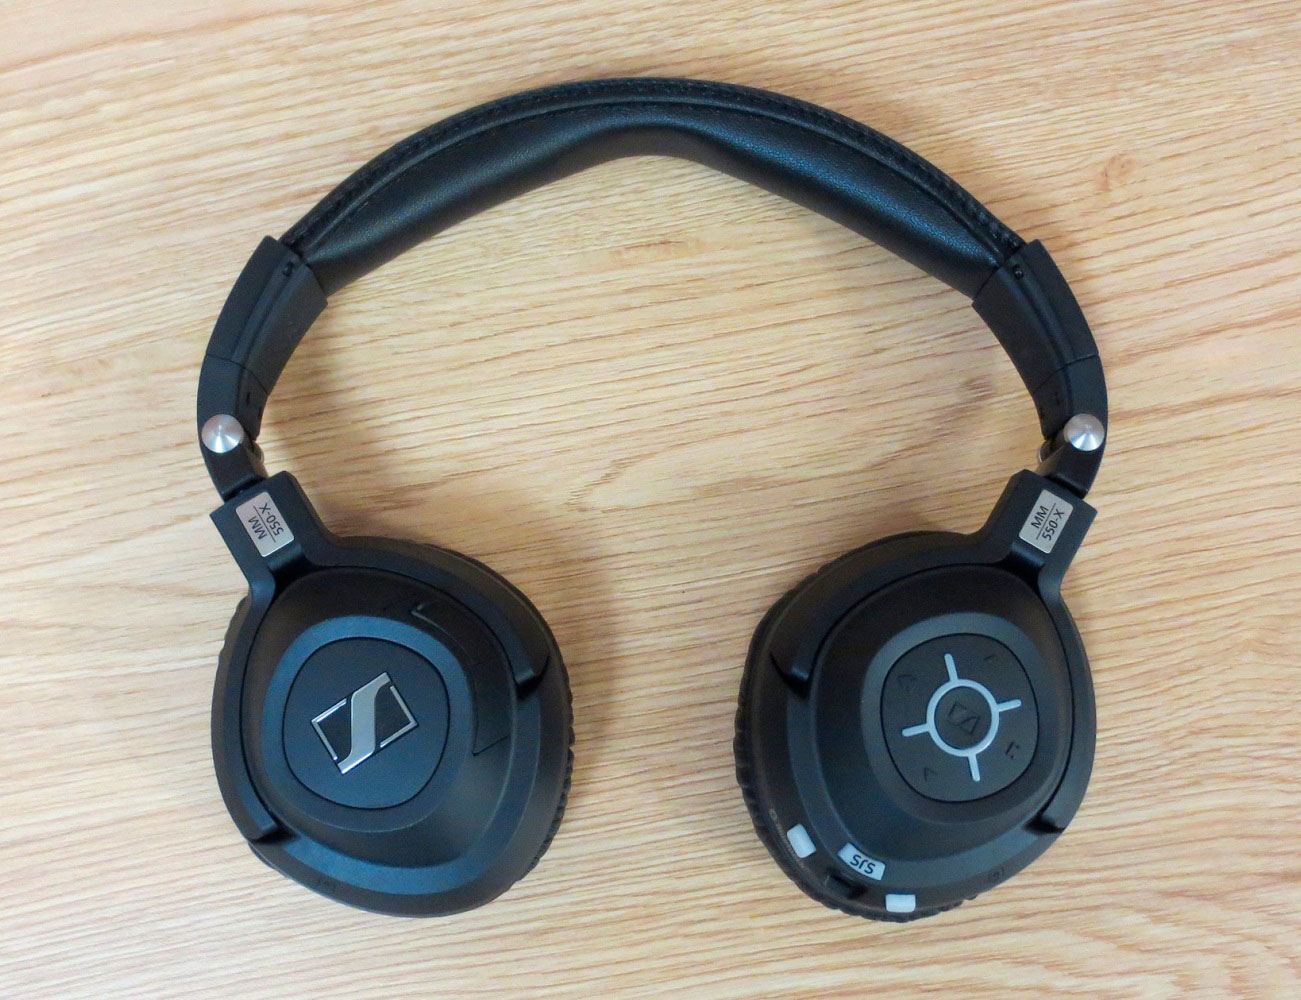 Sennheiser mm 550-X Headphones